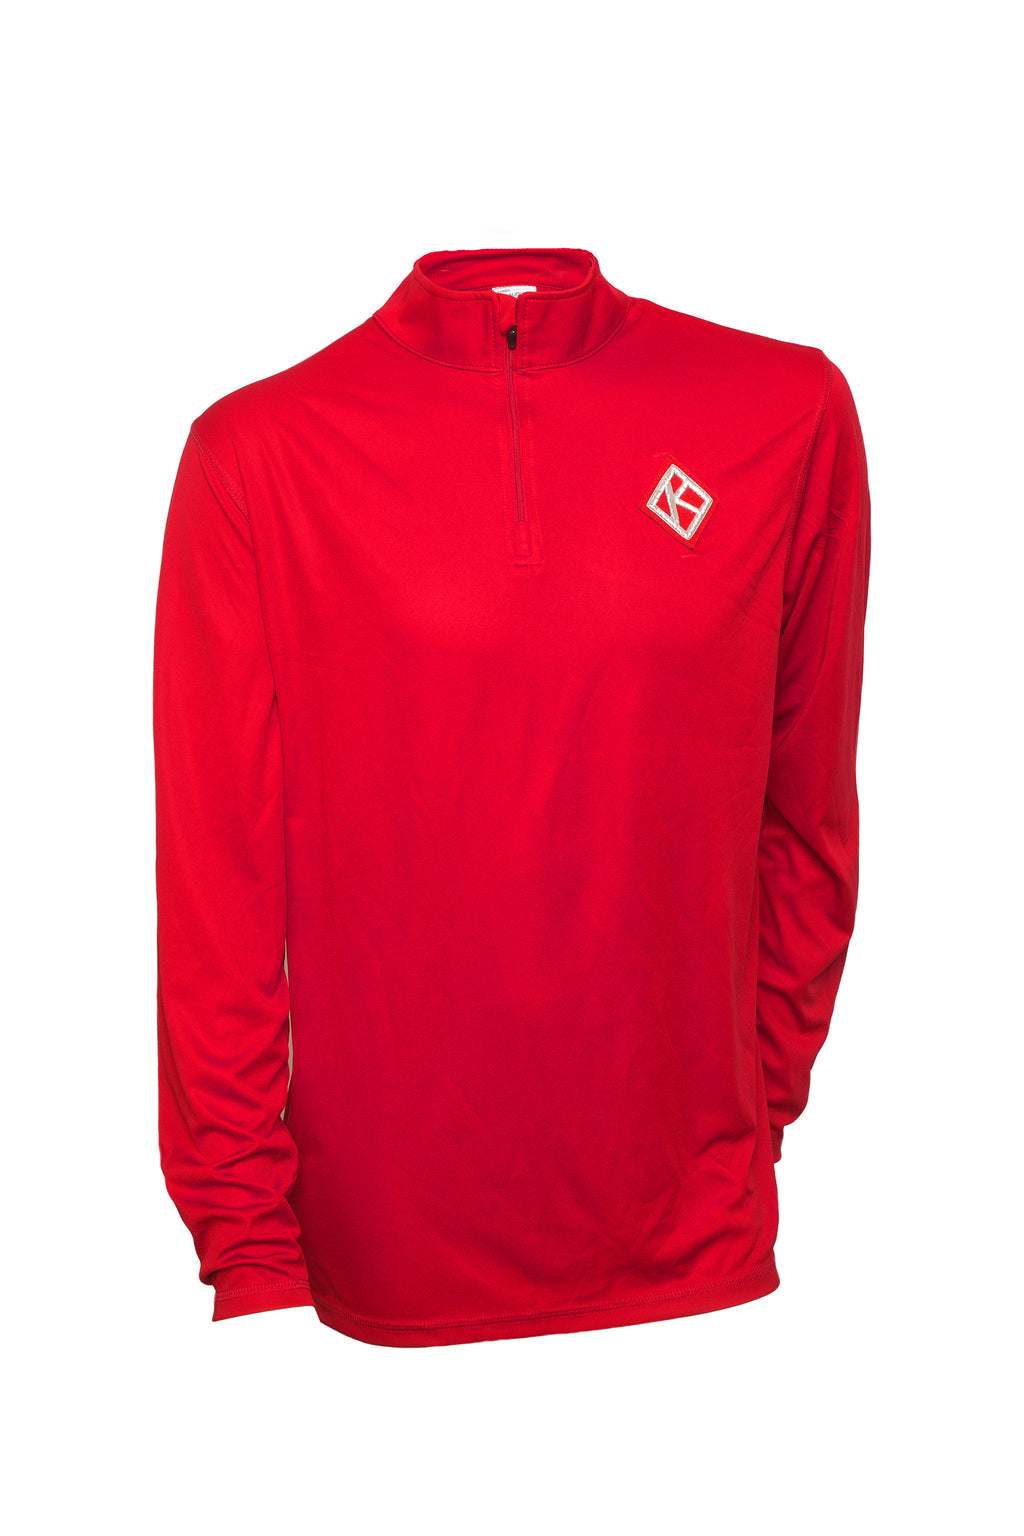 Kappa Dri Fit ¼ Zip Long Sleeve Shirt